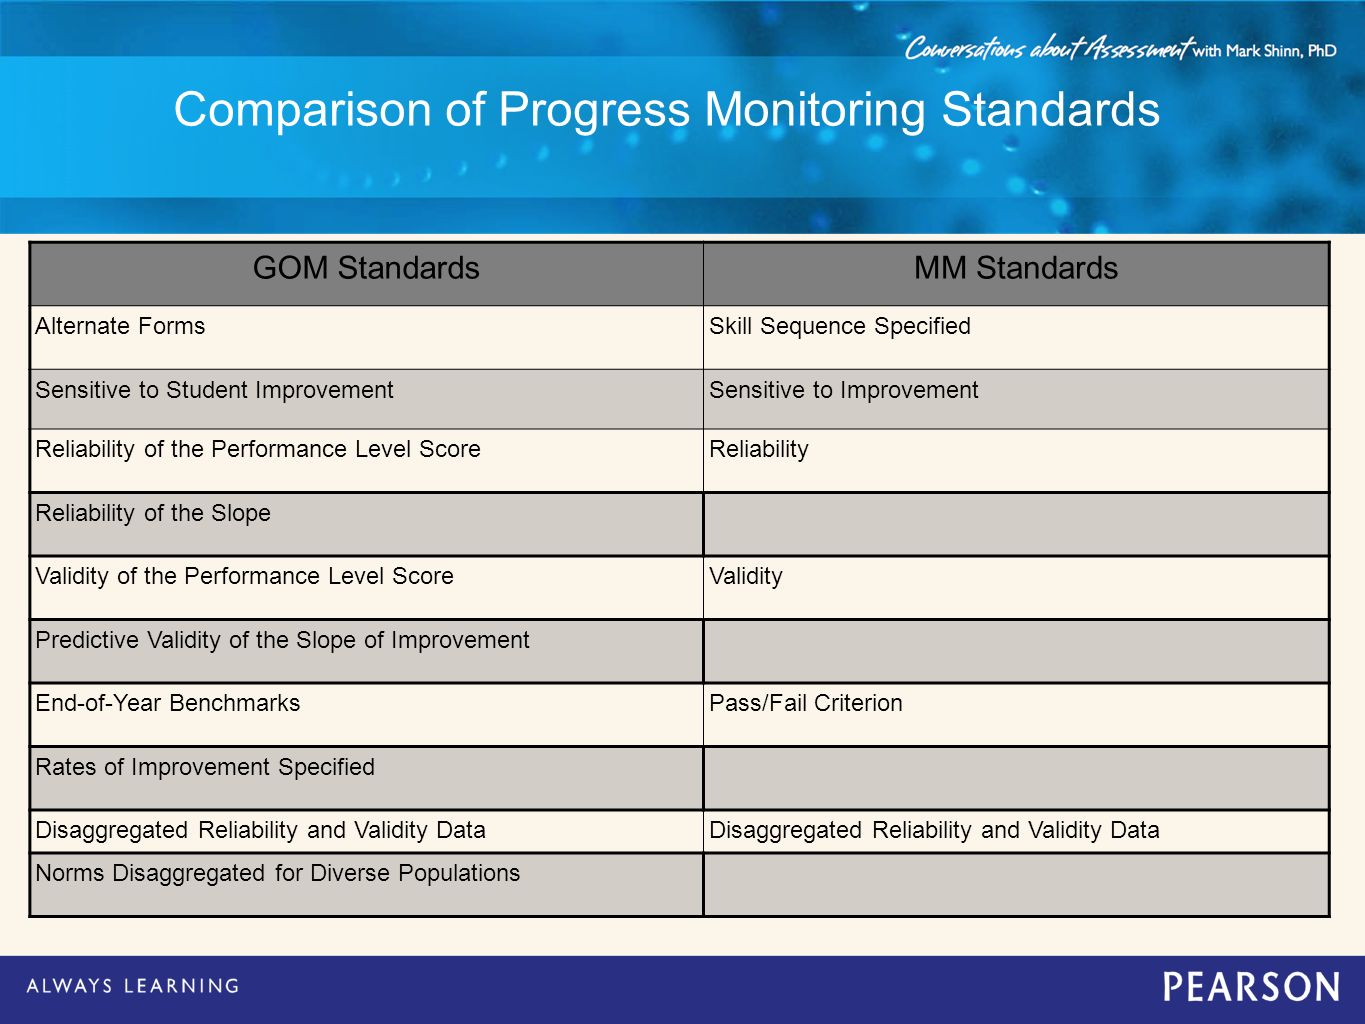 Comparison of Progress Monitoring Standards